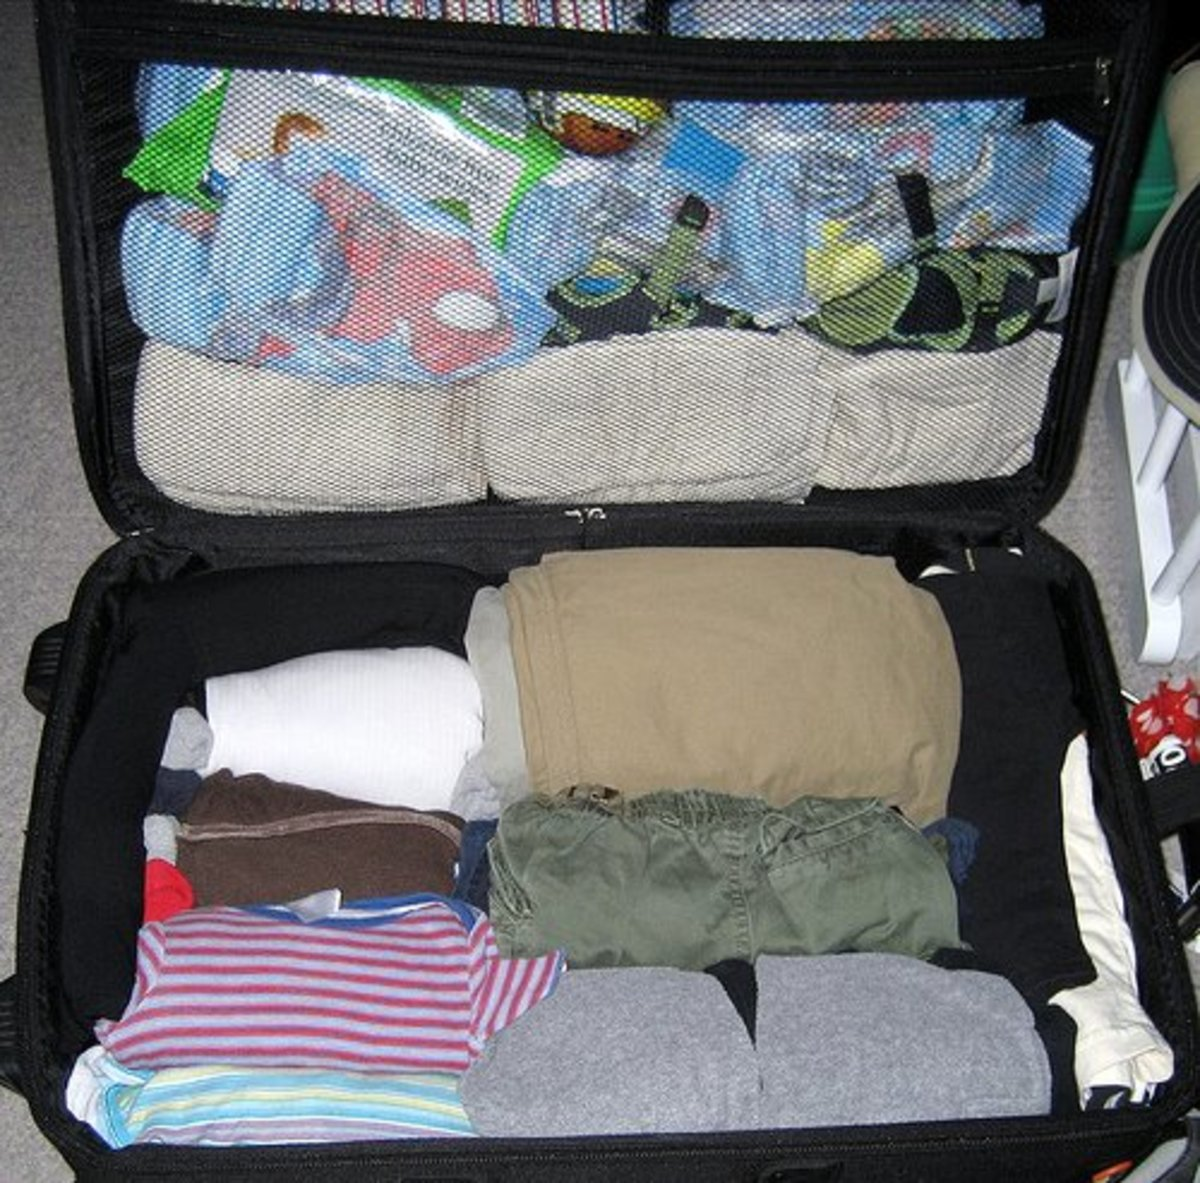 Tips for Packing Light When Travelling